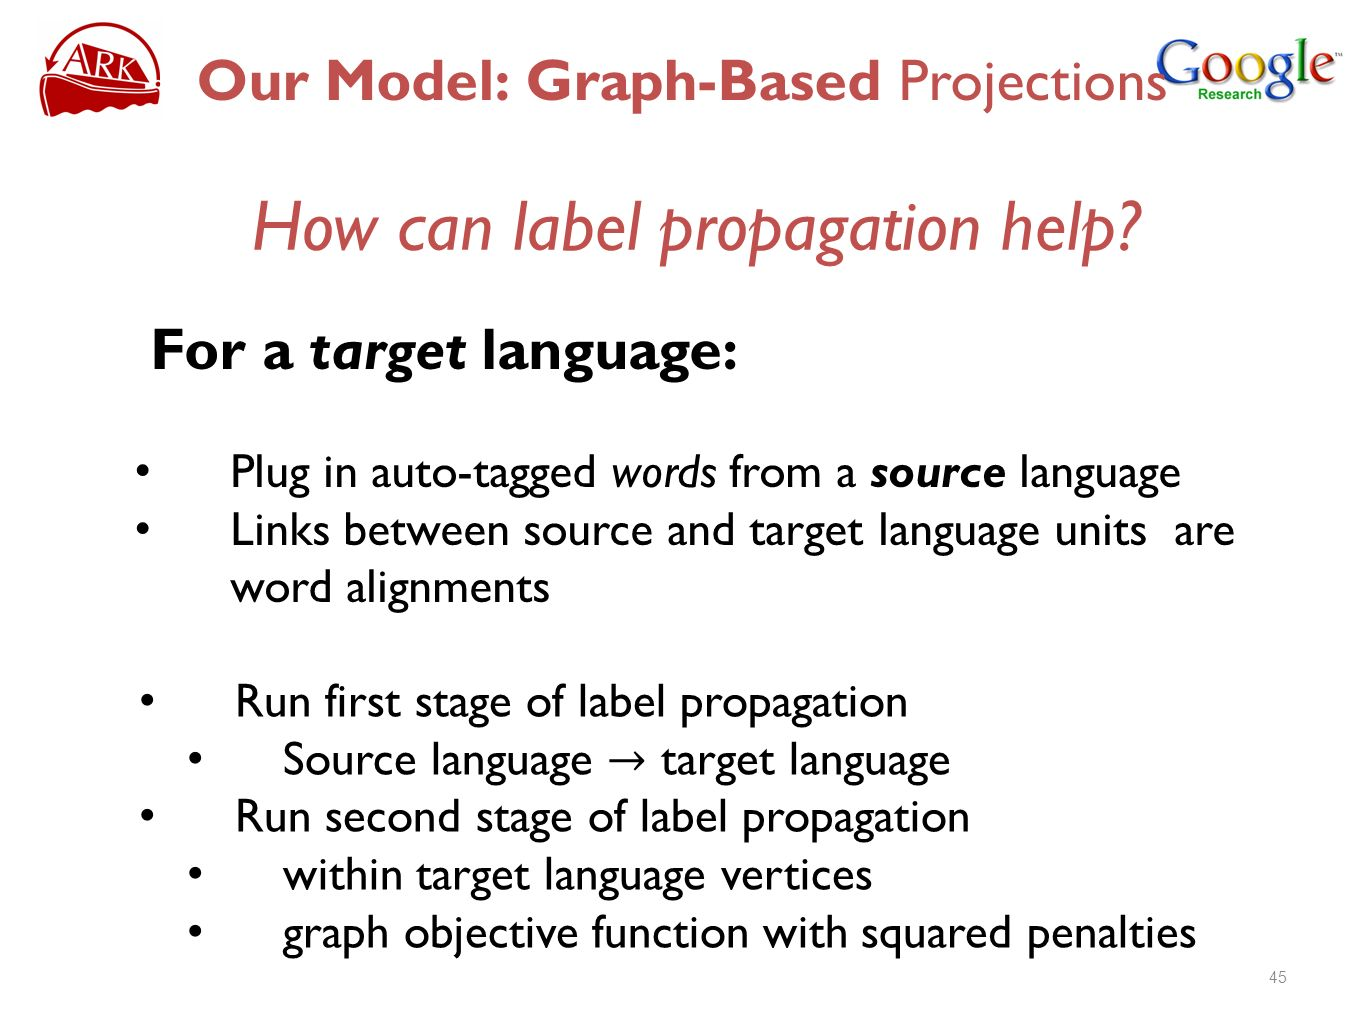 How can label propagation help? For a target language: Plug in auto-tagged words from a source language Links between source and target language units